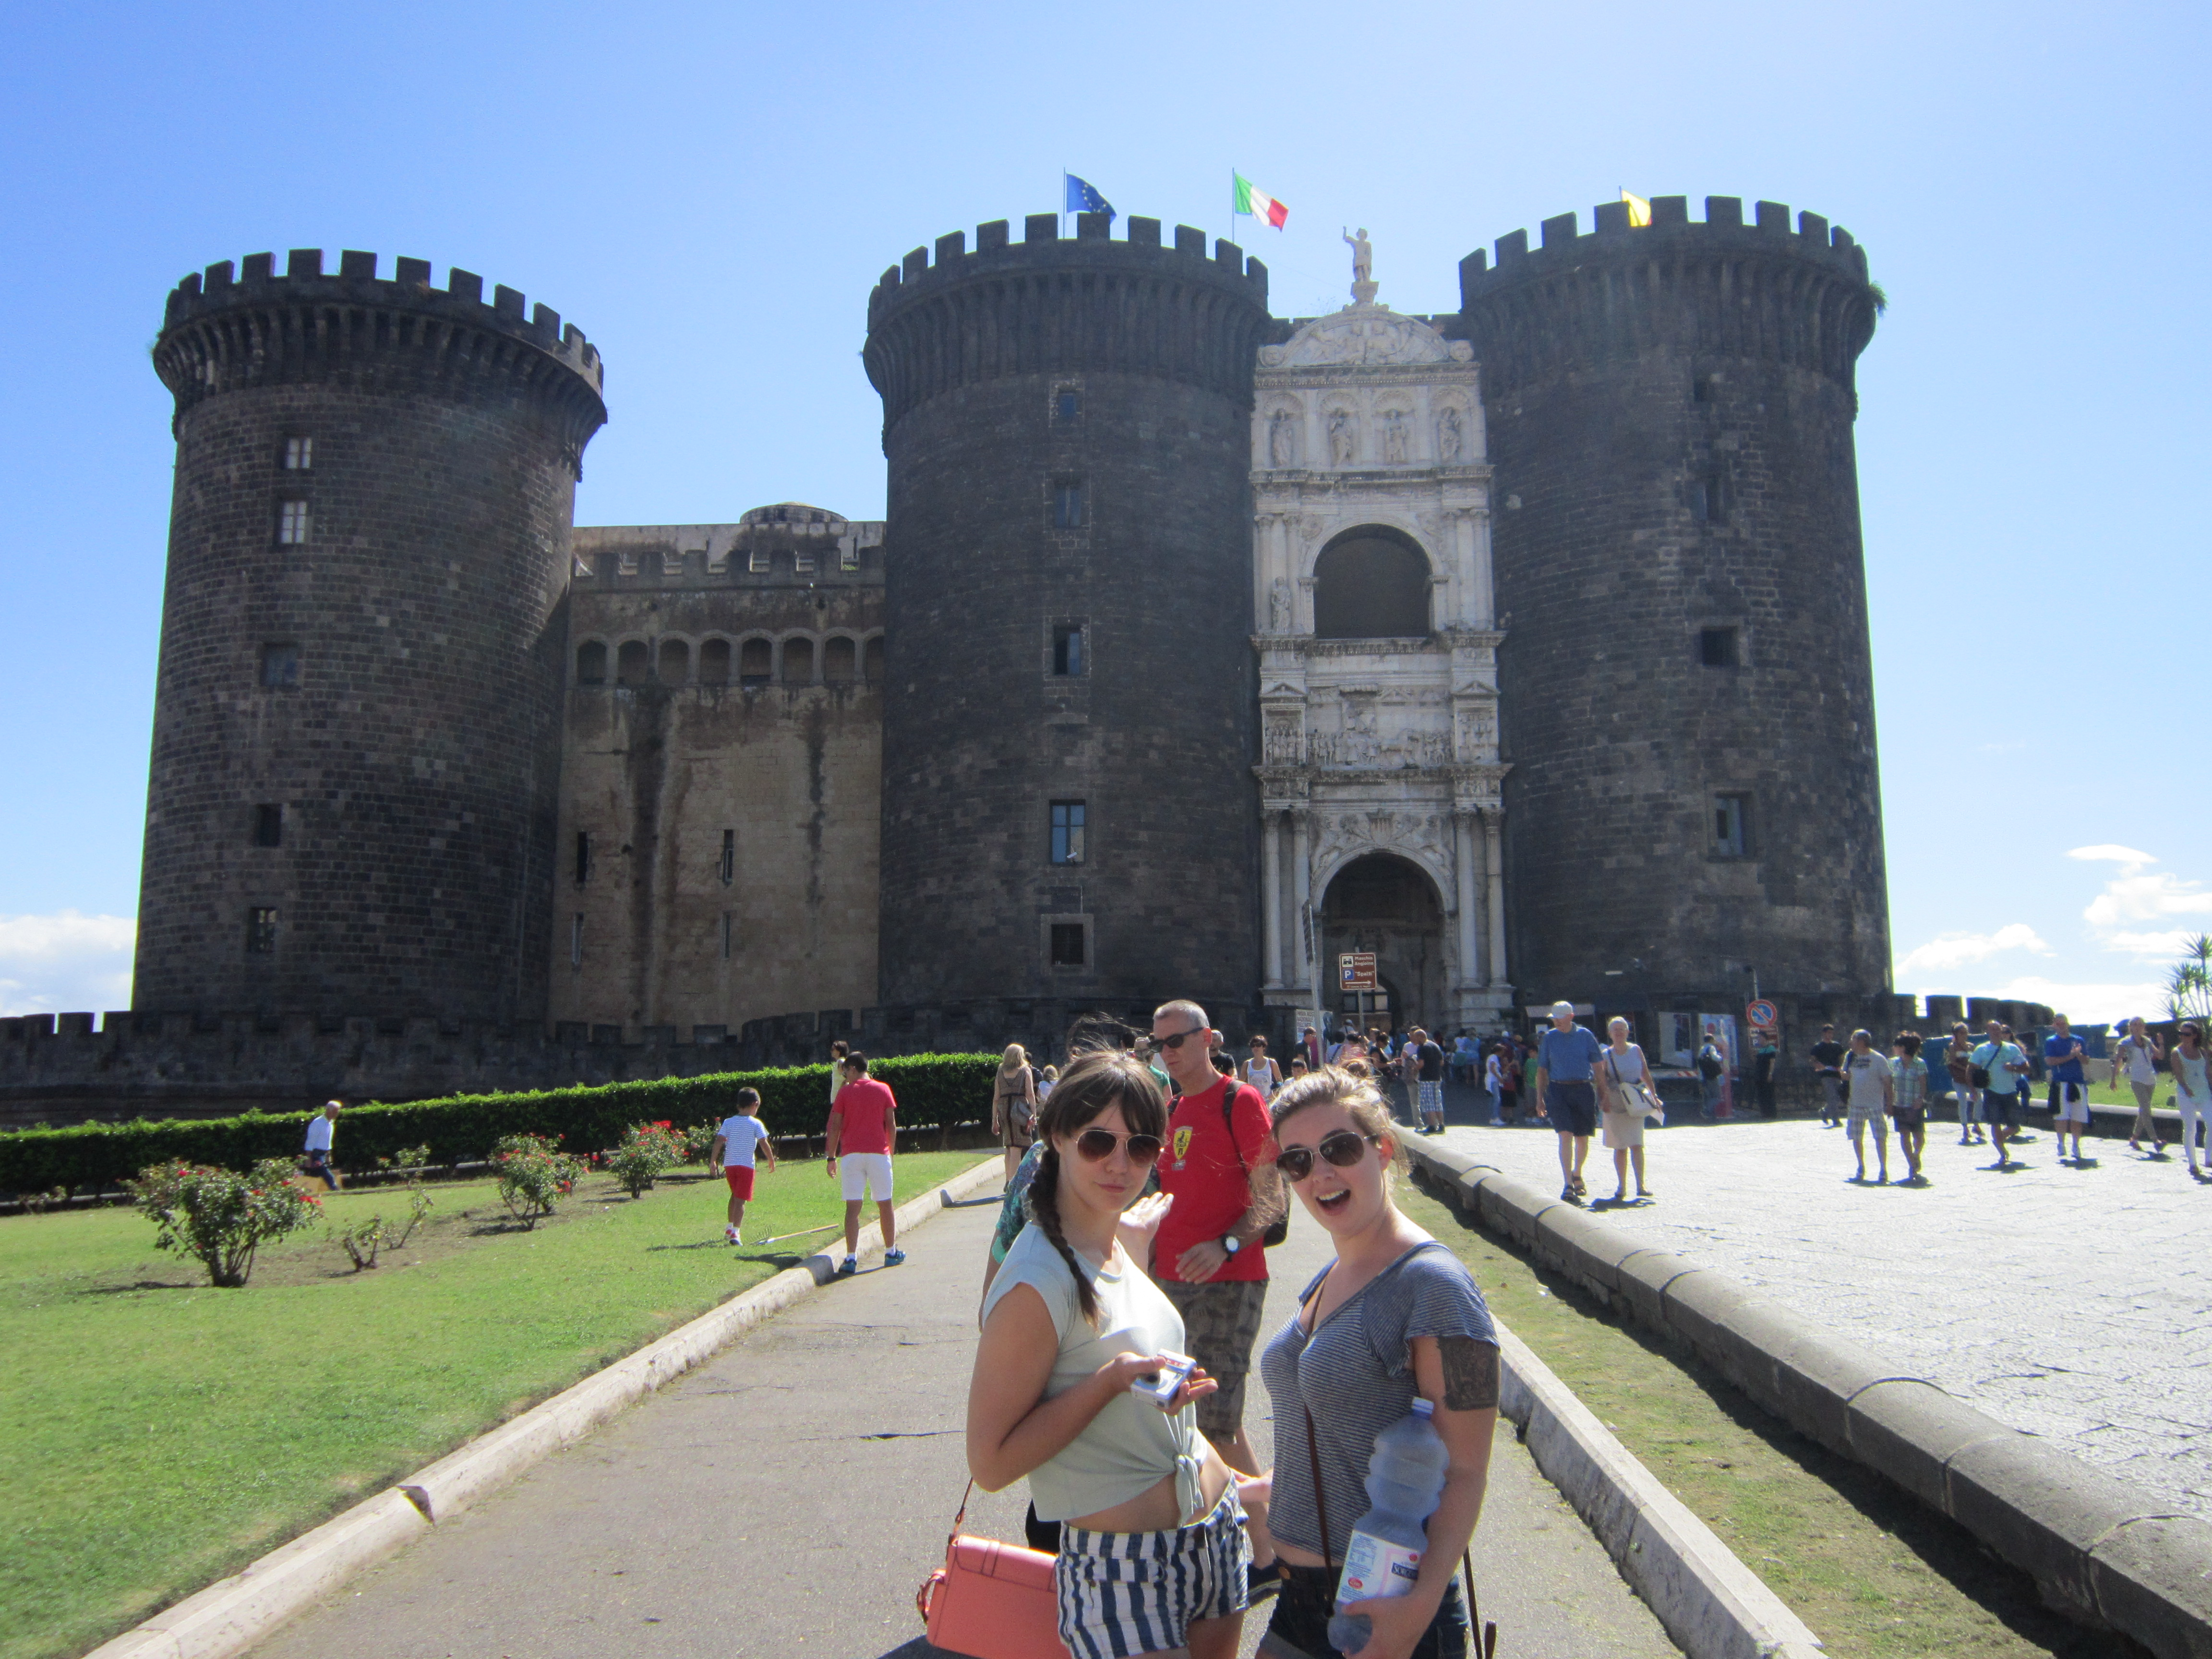 Hannah and Callie in front of Castel Nuovo